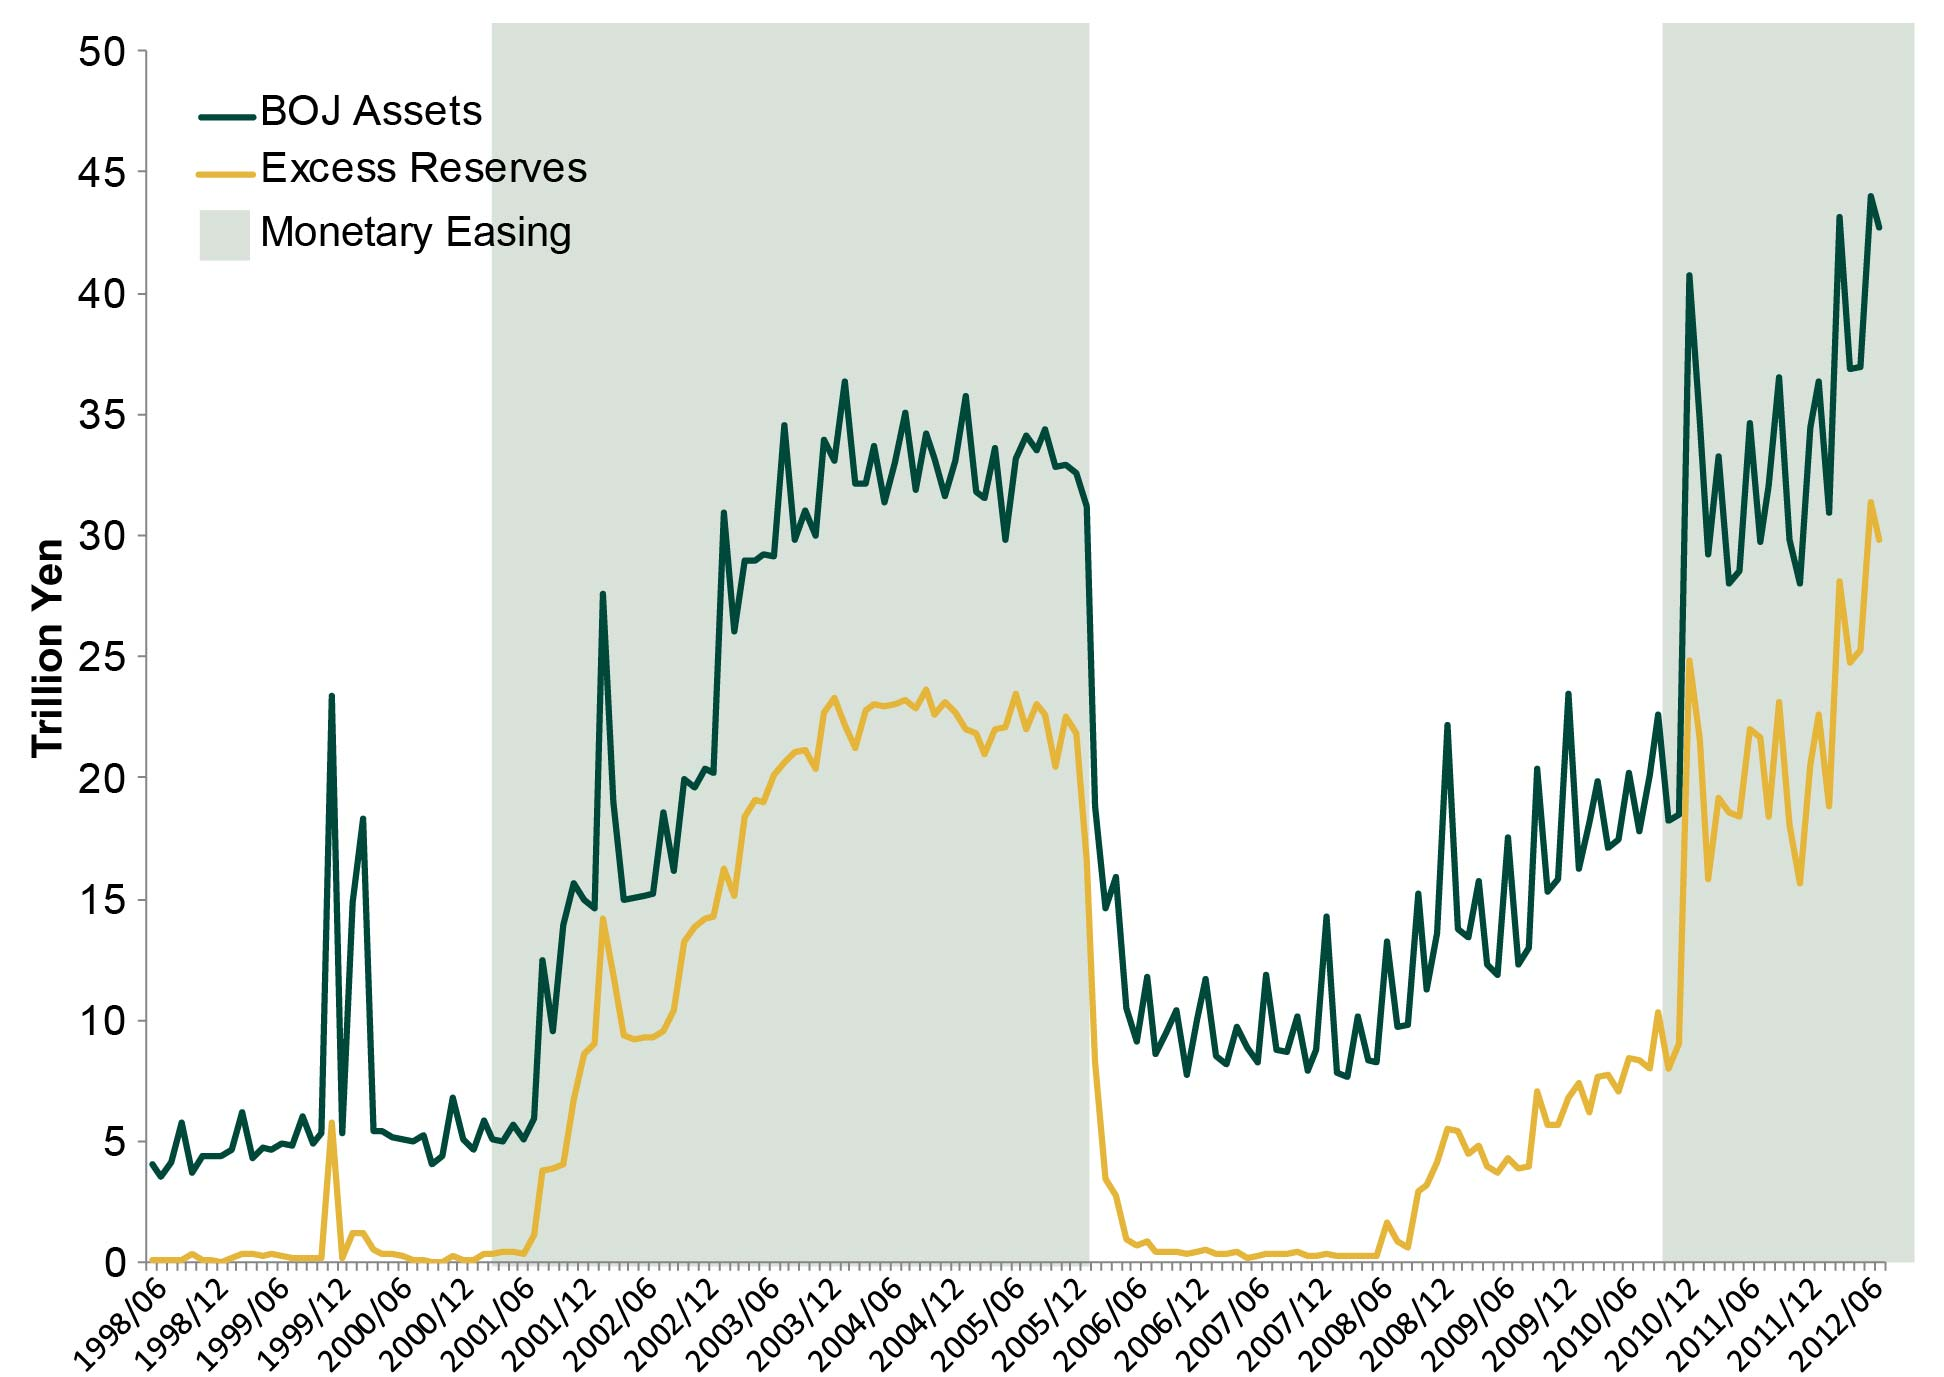 Exhibit 4: Monetary Easing and Excess Bank Reserves